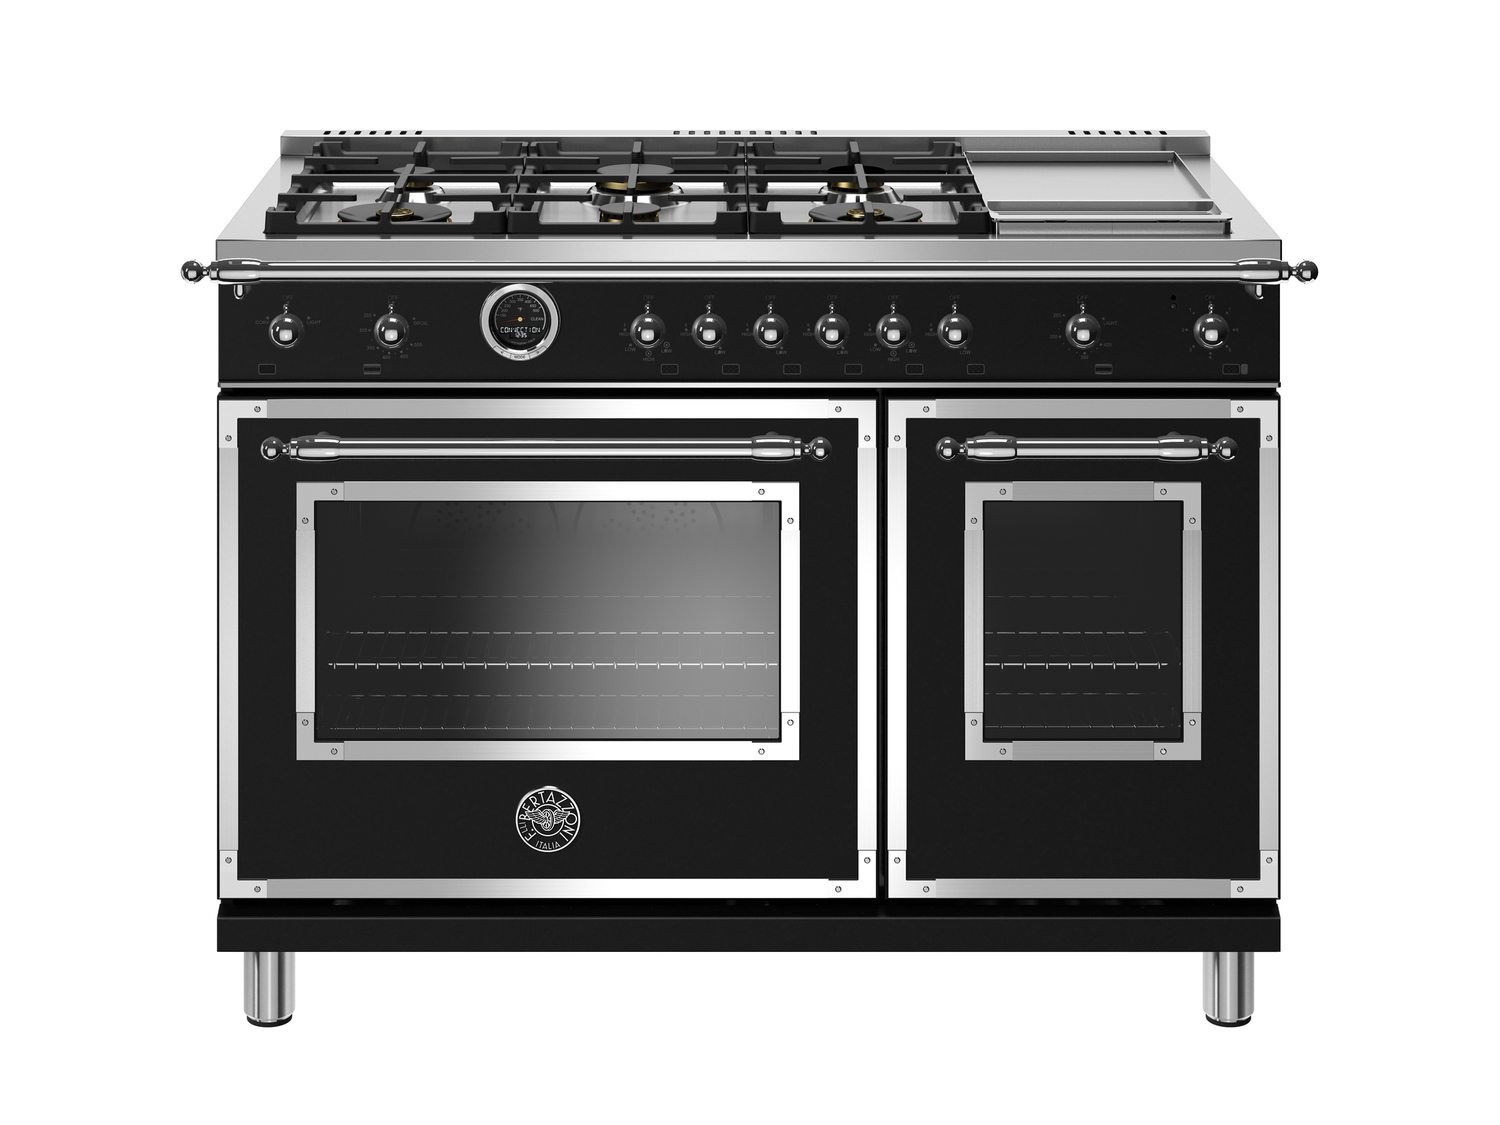 Bertazzoni48 Inch Dual Fuel Range, 6 Brass Burners And Griddle, Electric Self Clean Oven Nero Matt